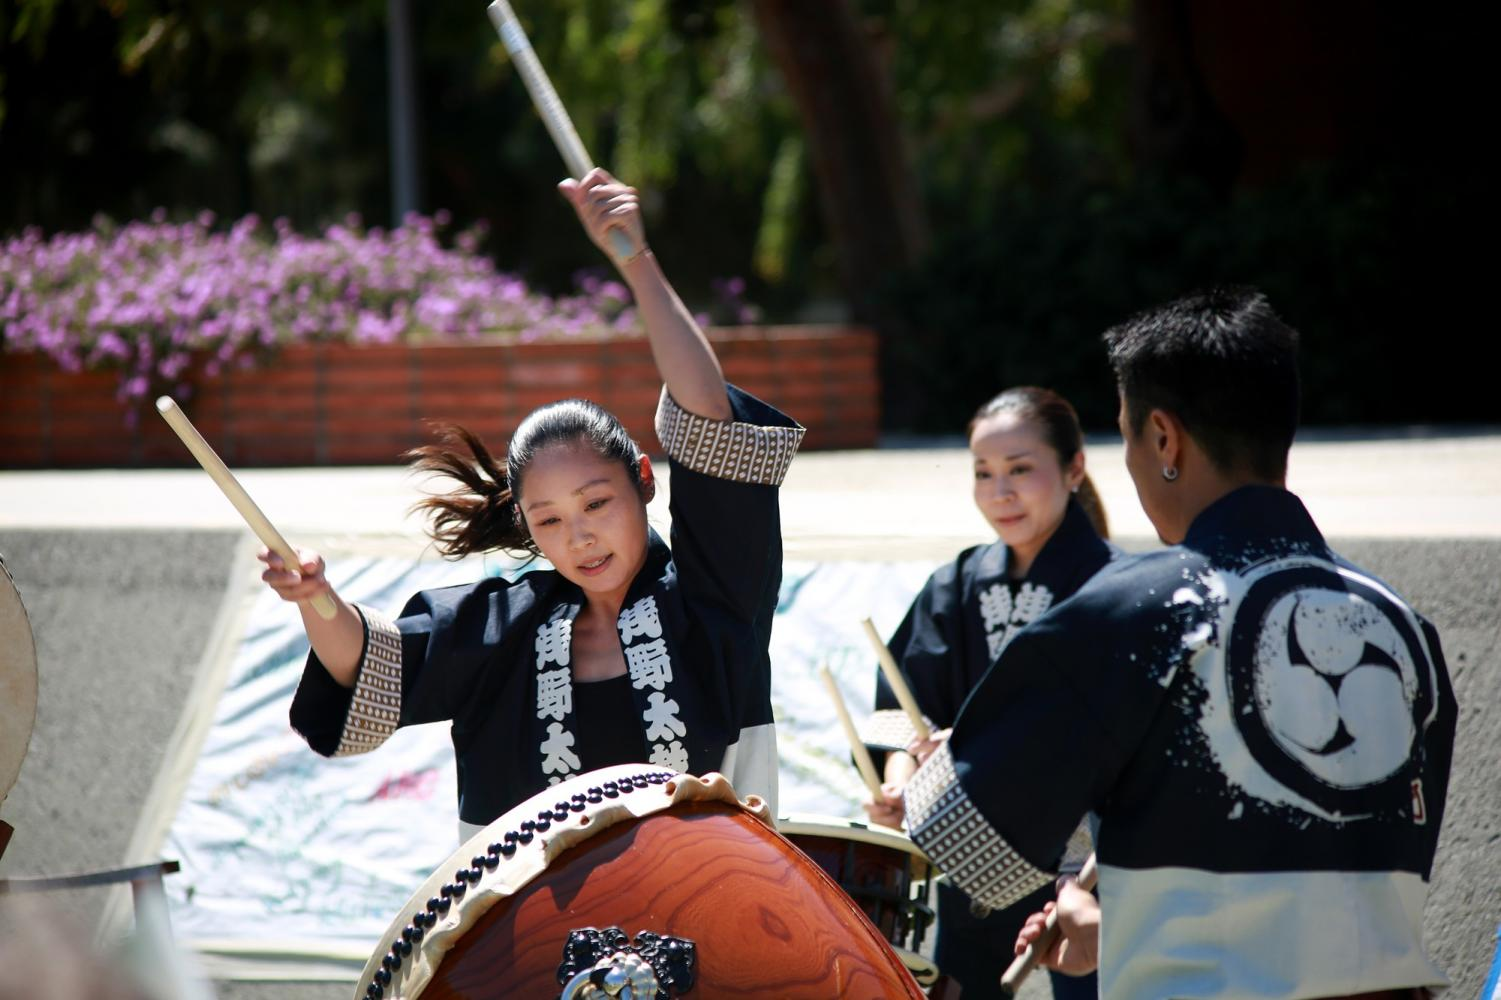 A member of the UnitOne of Asano Taiko U.S. plays the drums during the 19th annual Cherry Blossom Festival on Thursday, March 28. Photo credit: Mari Inagaki